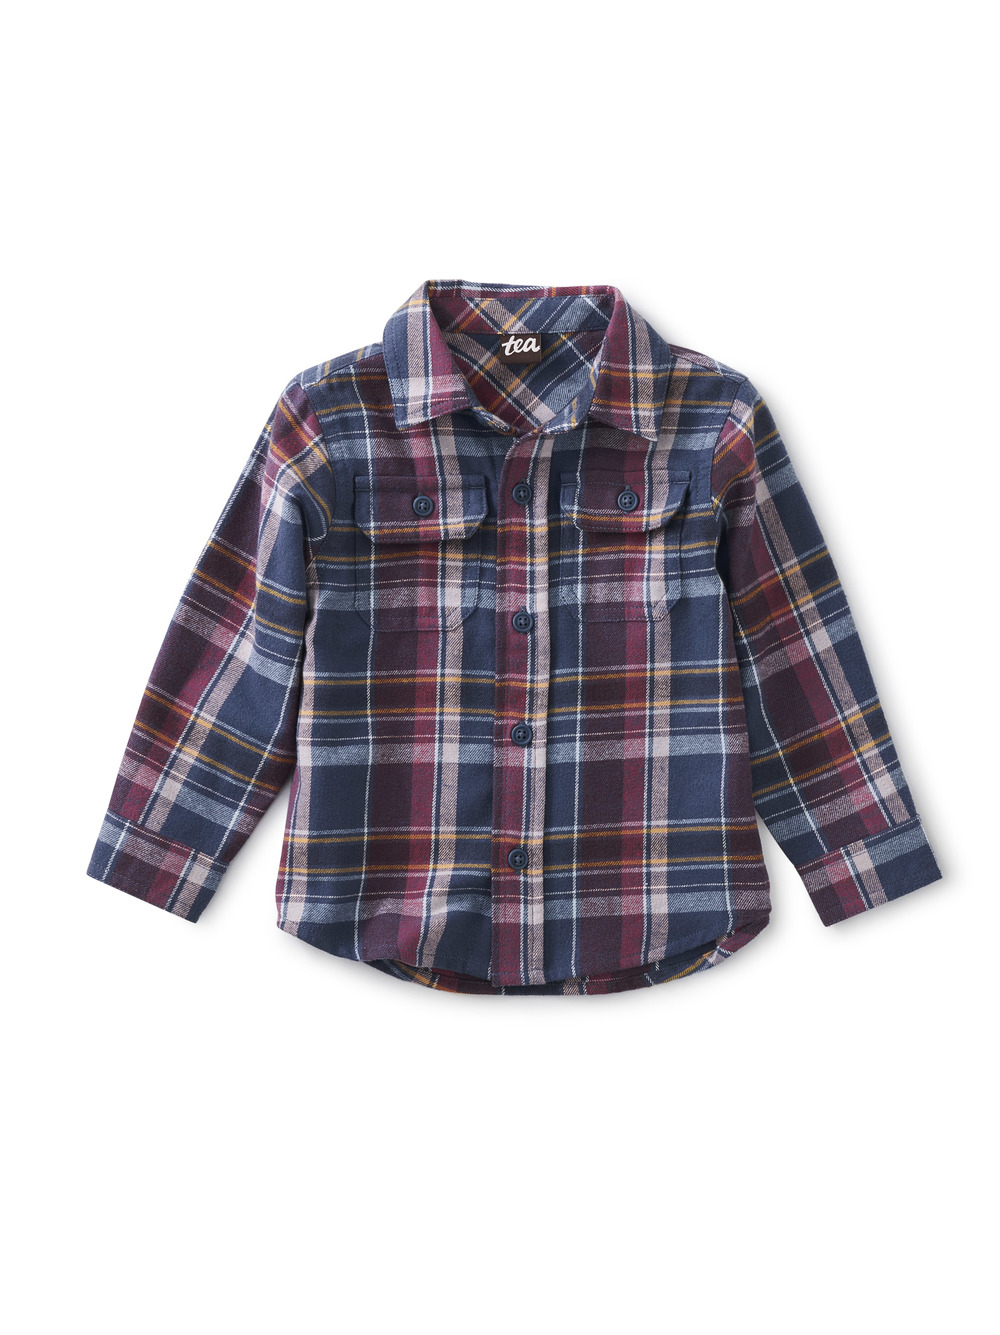 Flannel Button Up Baby Shirt